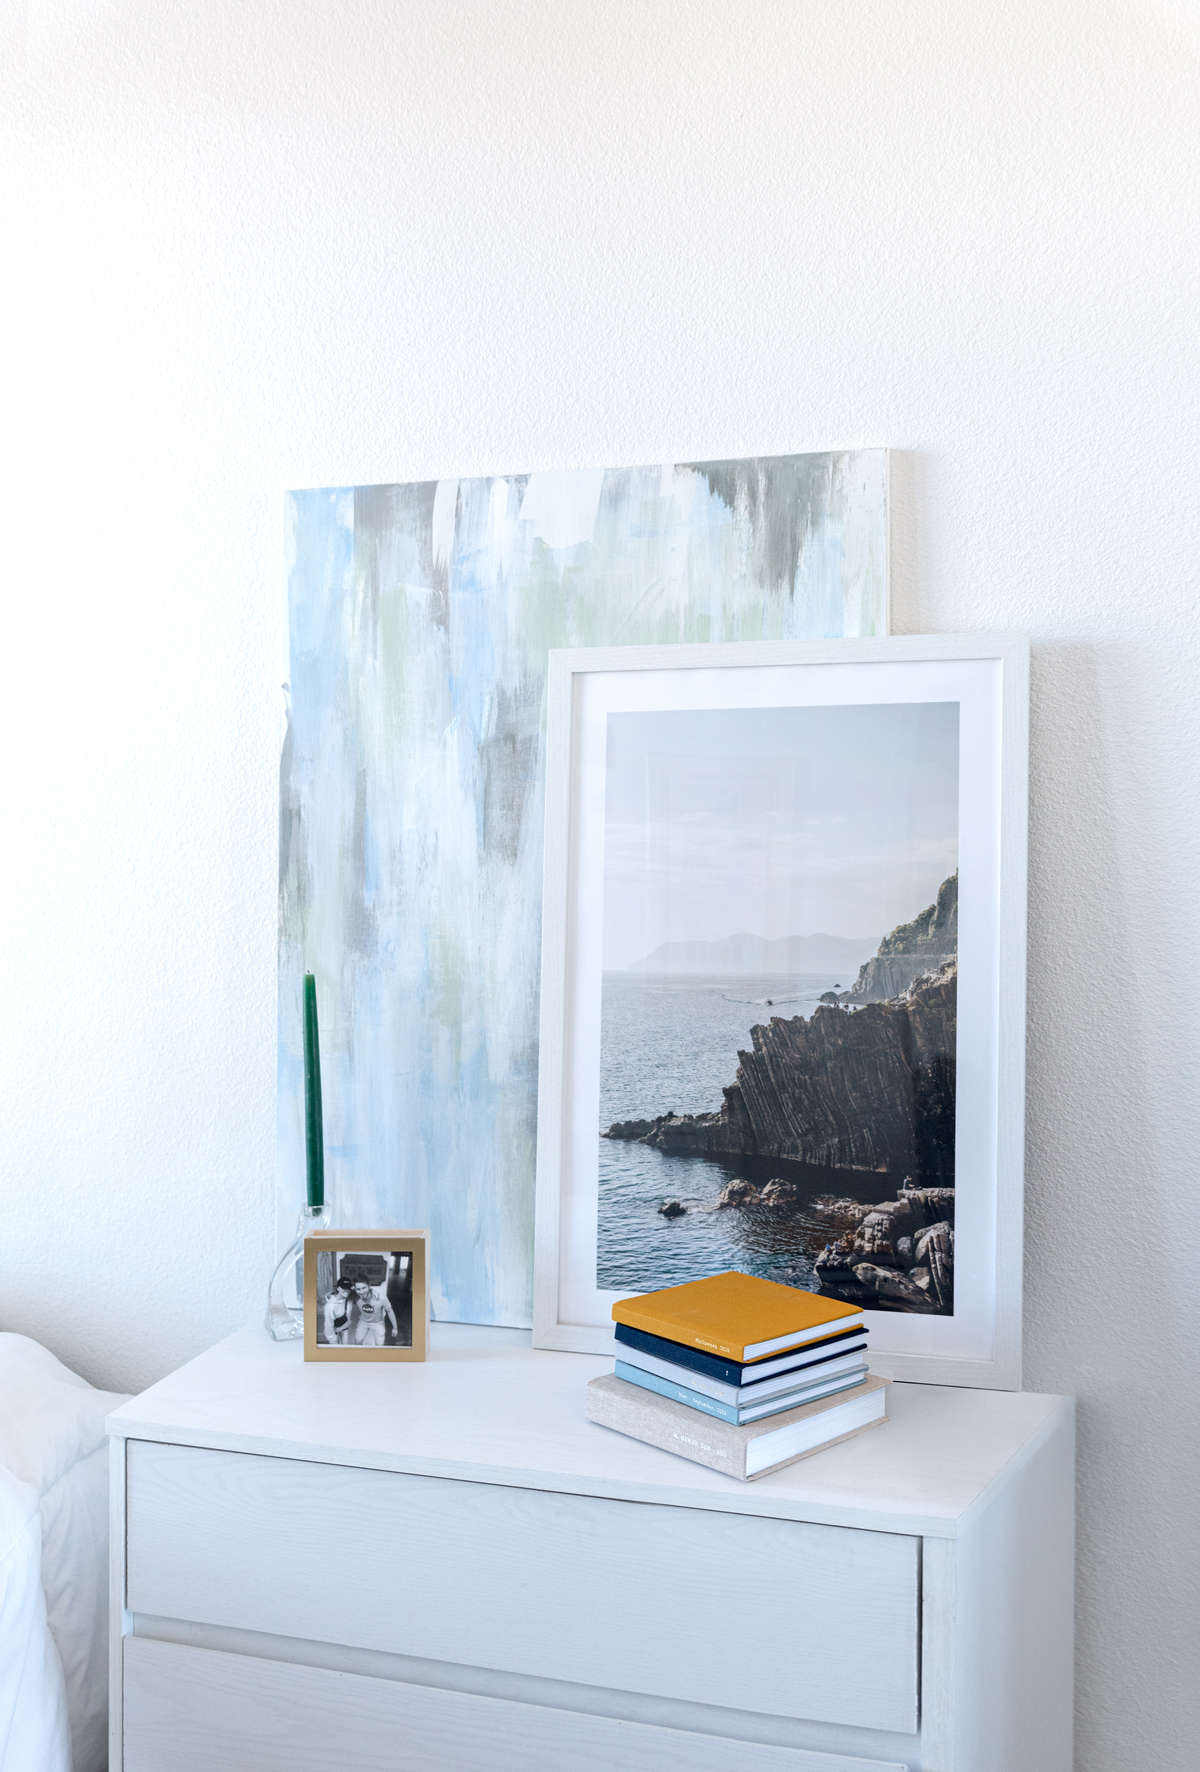 Artifact Uprising gallery frame, everyday photo books, and brass & wood display box on dresser